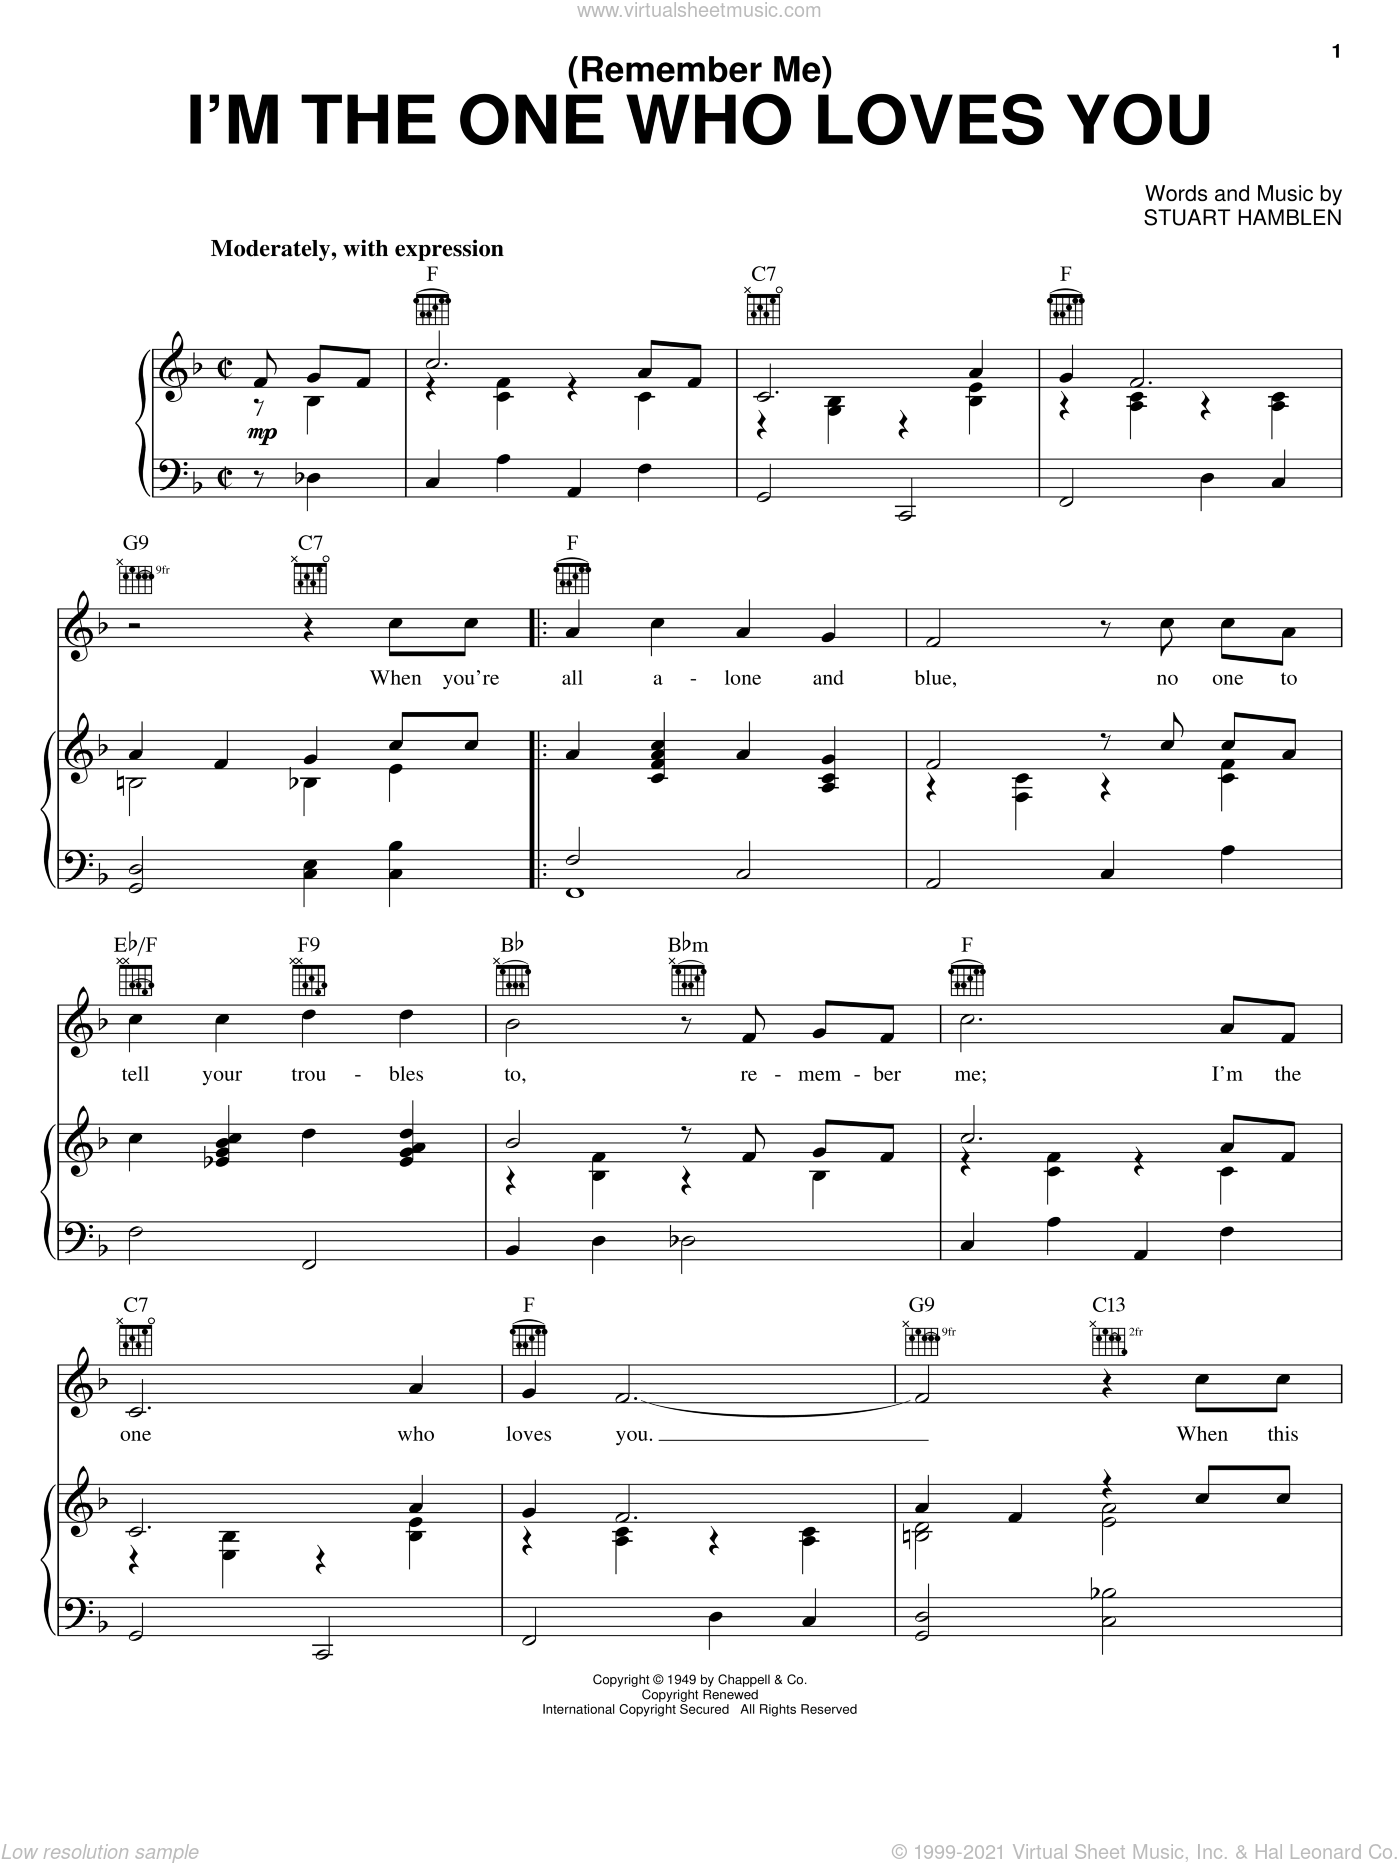 (Remember Me) I'm The One Who Loves You sheet music for voice, piano or guitar by Ernest Tubb and Stuart Hamblen, intermediate skill level